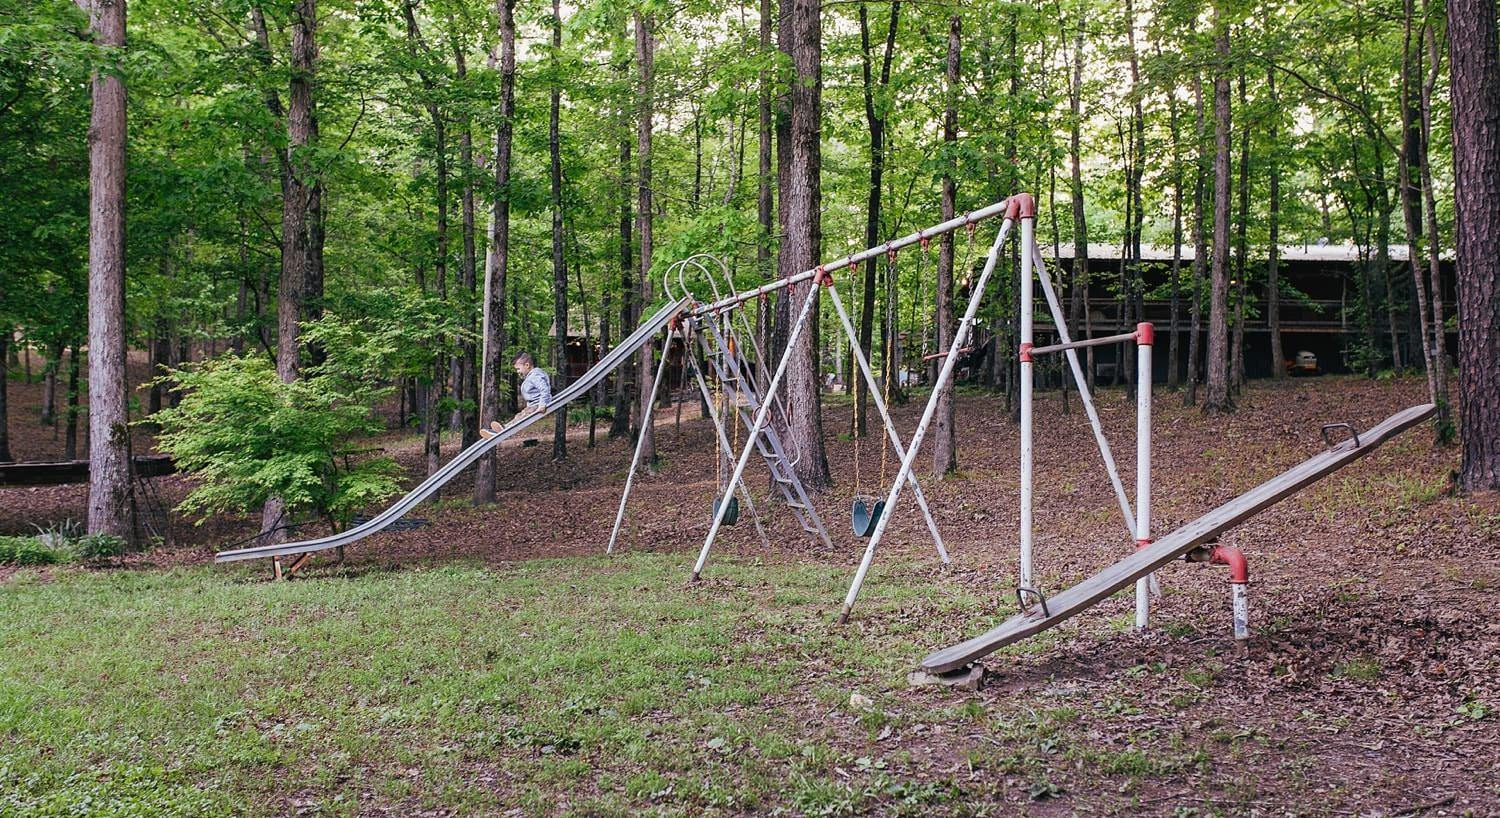 Little boy sliding down a slide on a playground set surrounded by trees